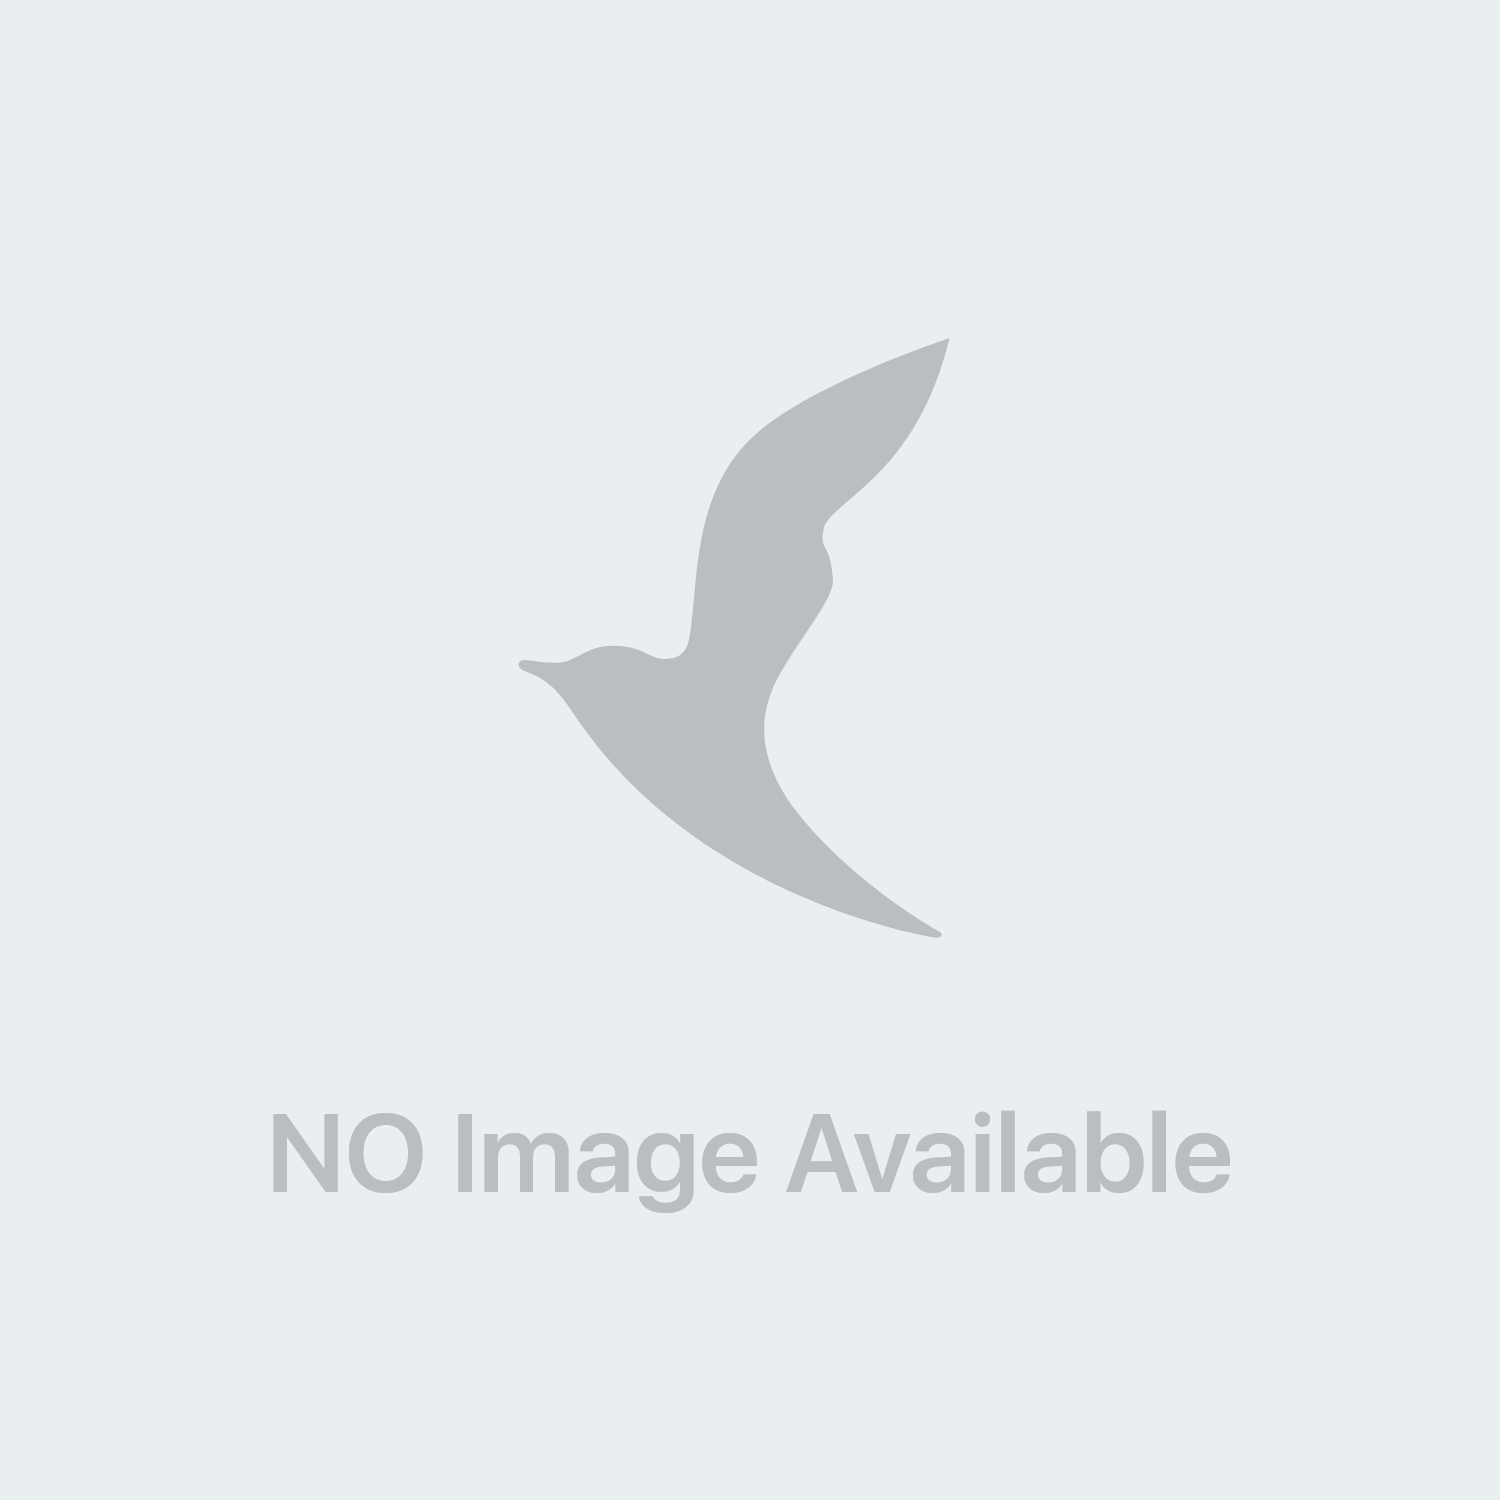 Optima Colours Of Life Acai Integratore Metabolismo Lipidi 60 Compresse